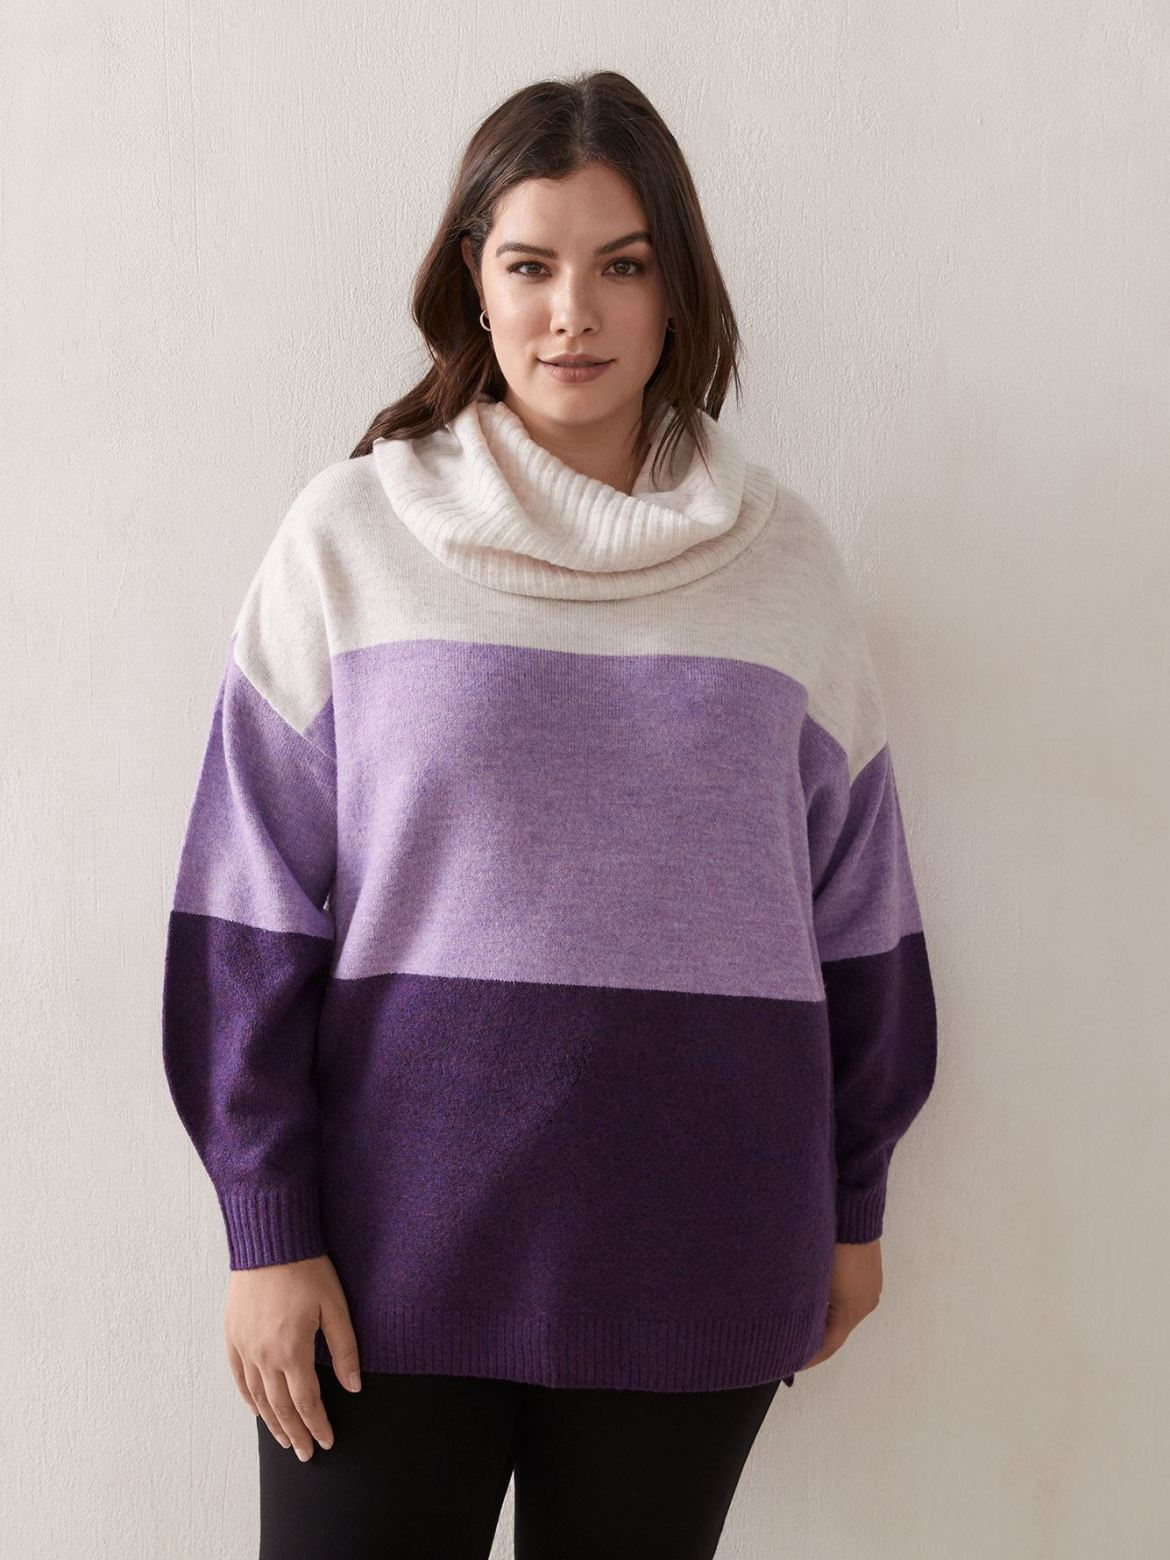 Long-Sleeve Sweater With Cowl Neck – In Every Story